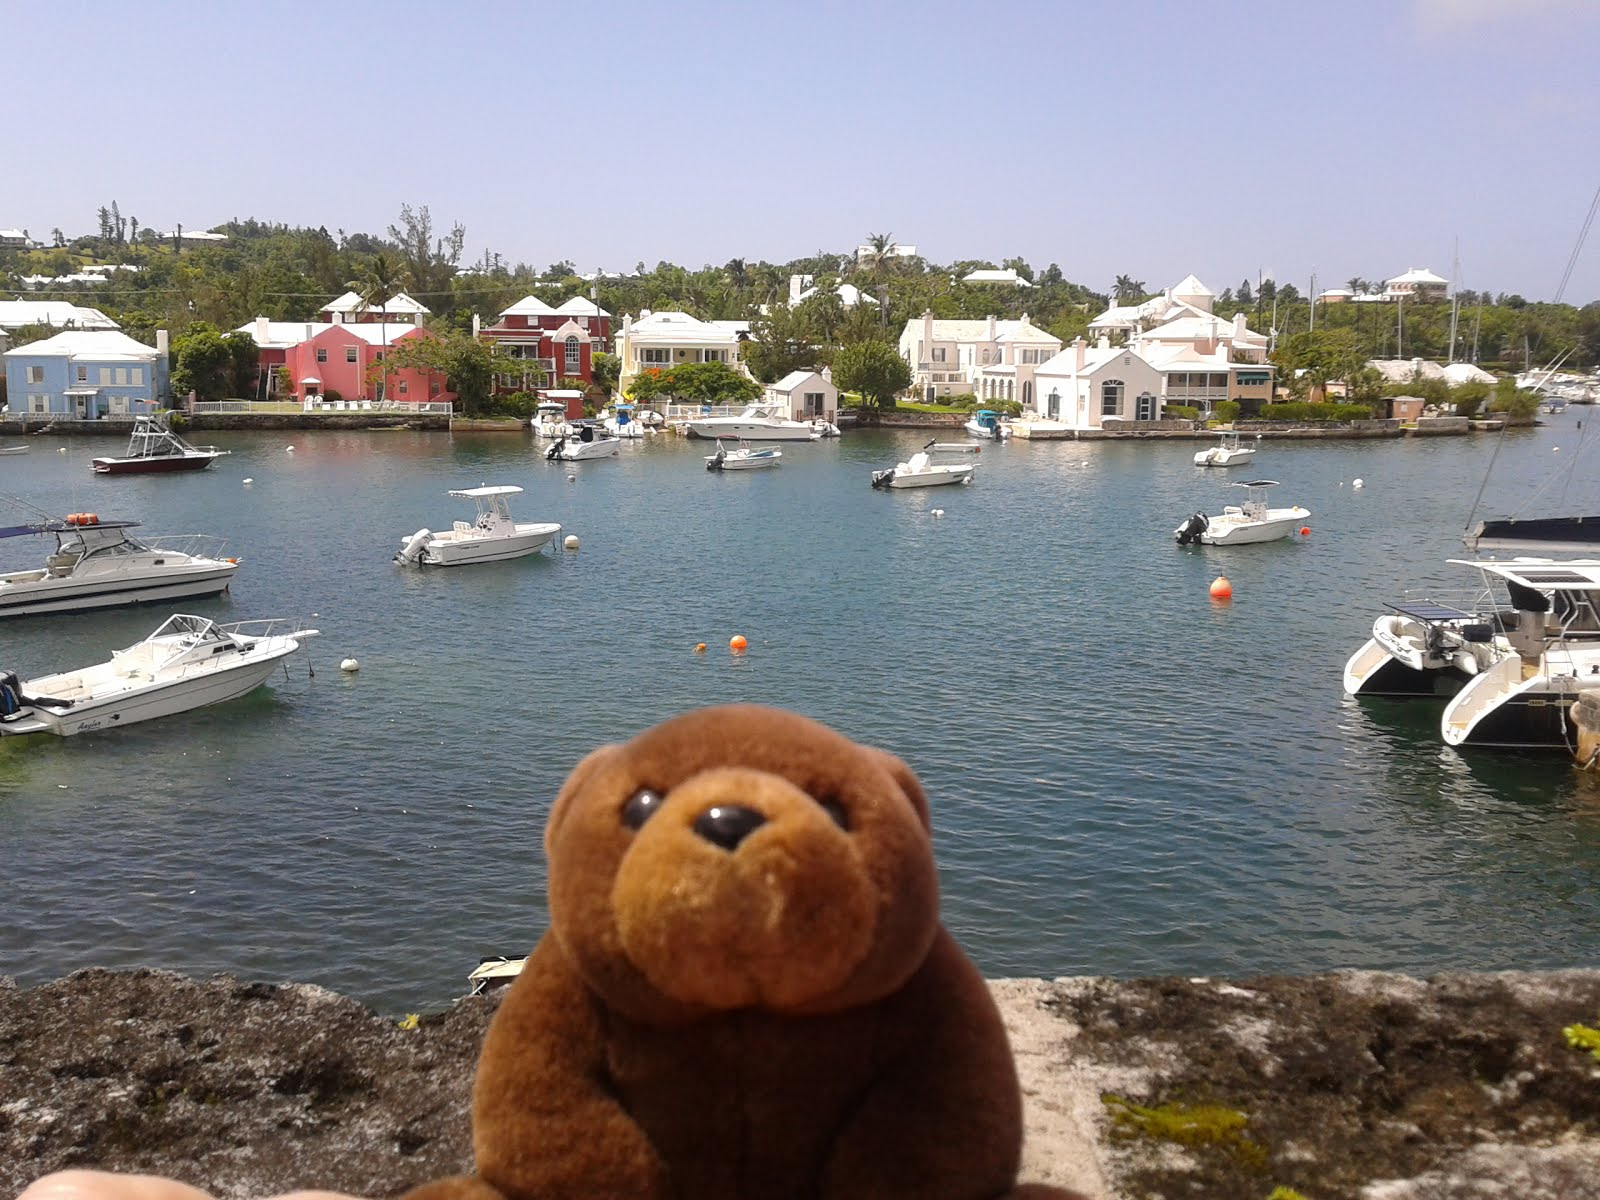 Teddy Bear in Bermuda